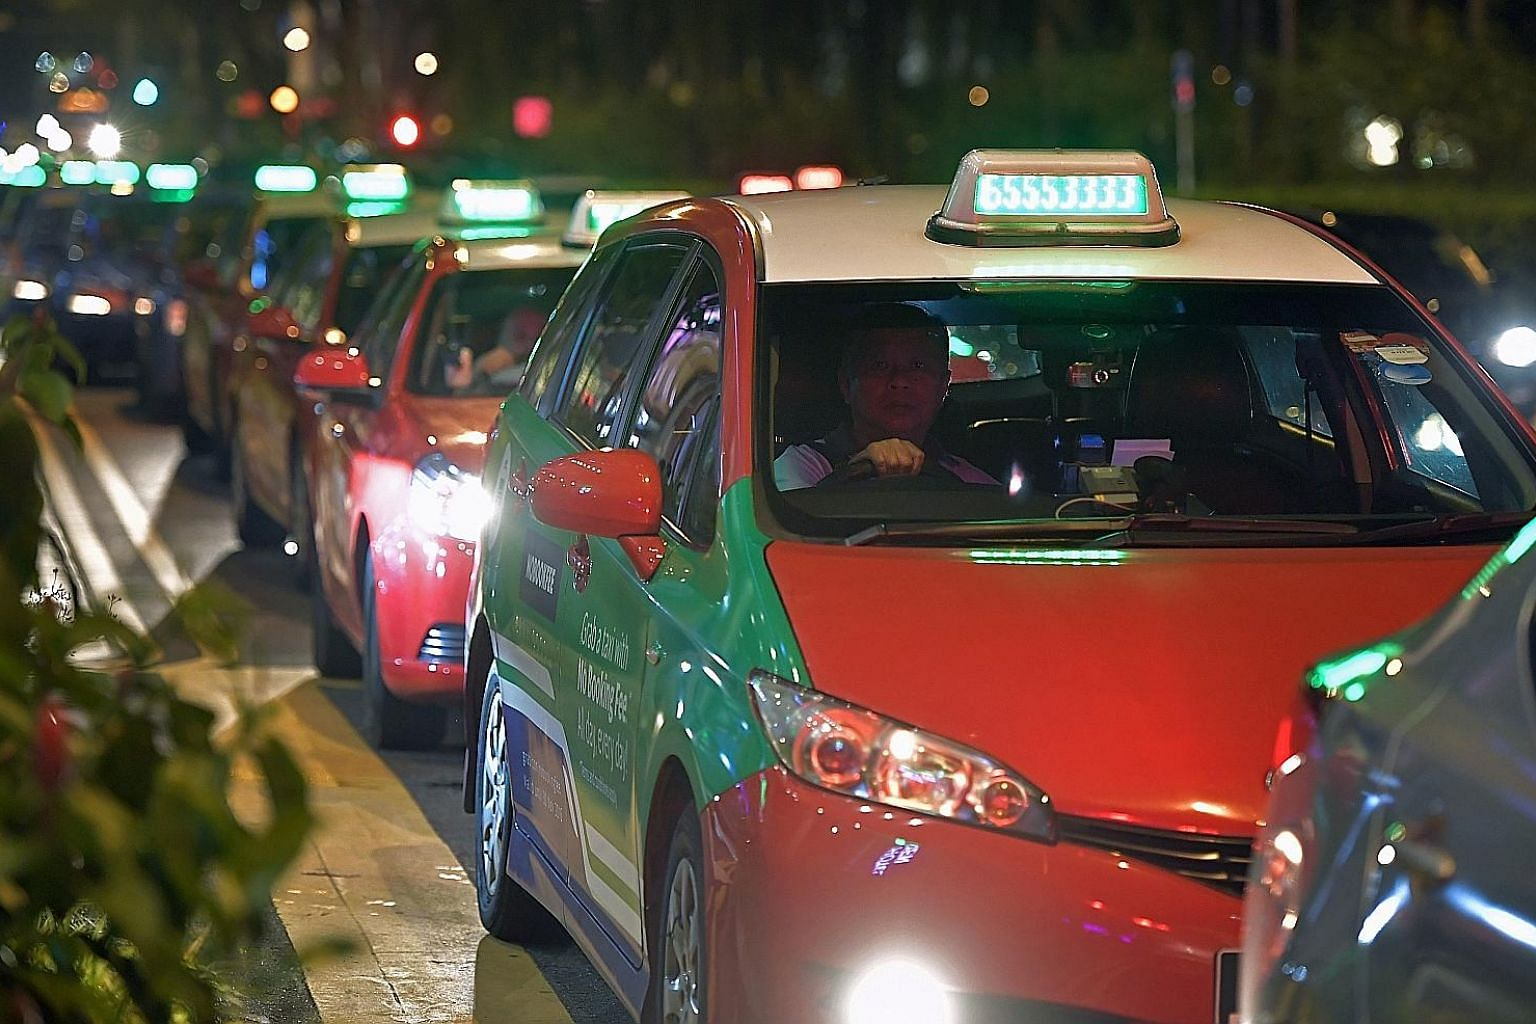 Of the 20 taxi drivers interviewed, nearly three-quarters said they have had nasty experiences with drunk passengers. Some cabbies said vulgarities have been hurled at them or they have been attacked. Others said their taxis have been soiled or they